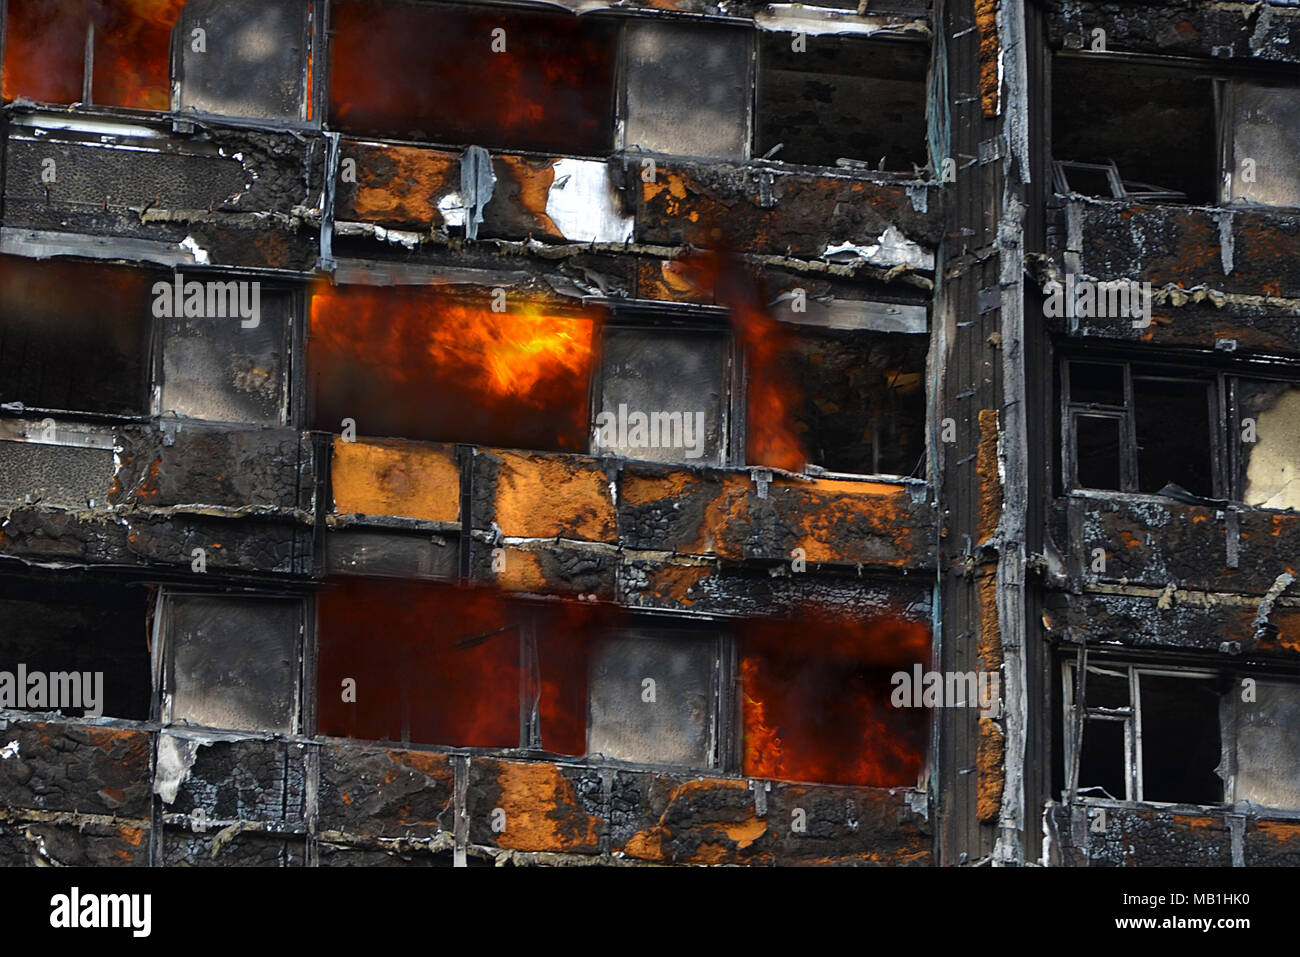 Grenfell tower, fire and flames. Reynobond PE - Stock Image